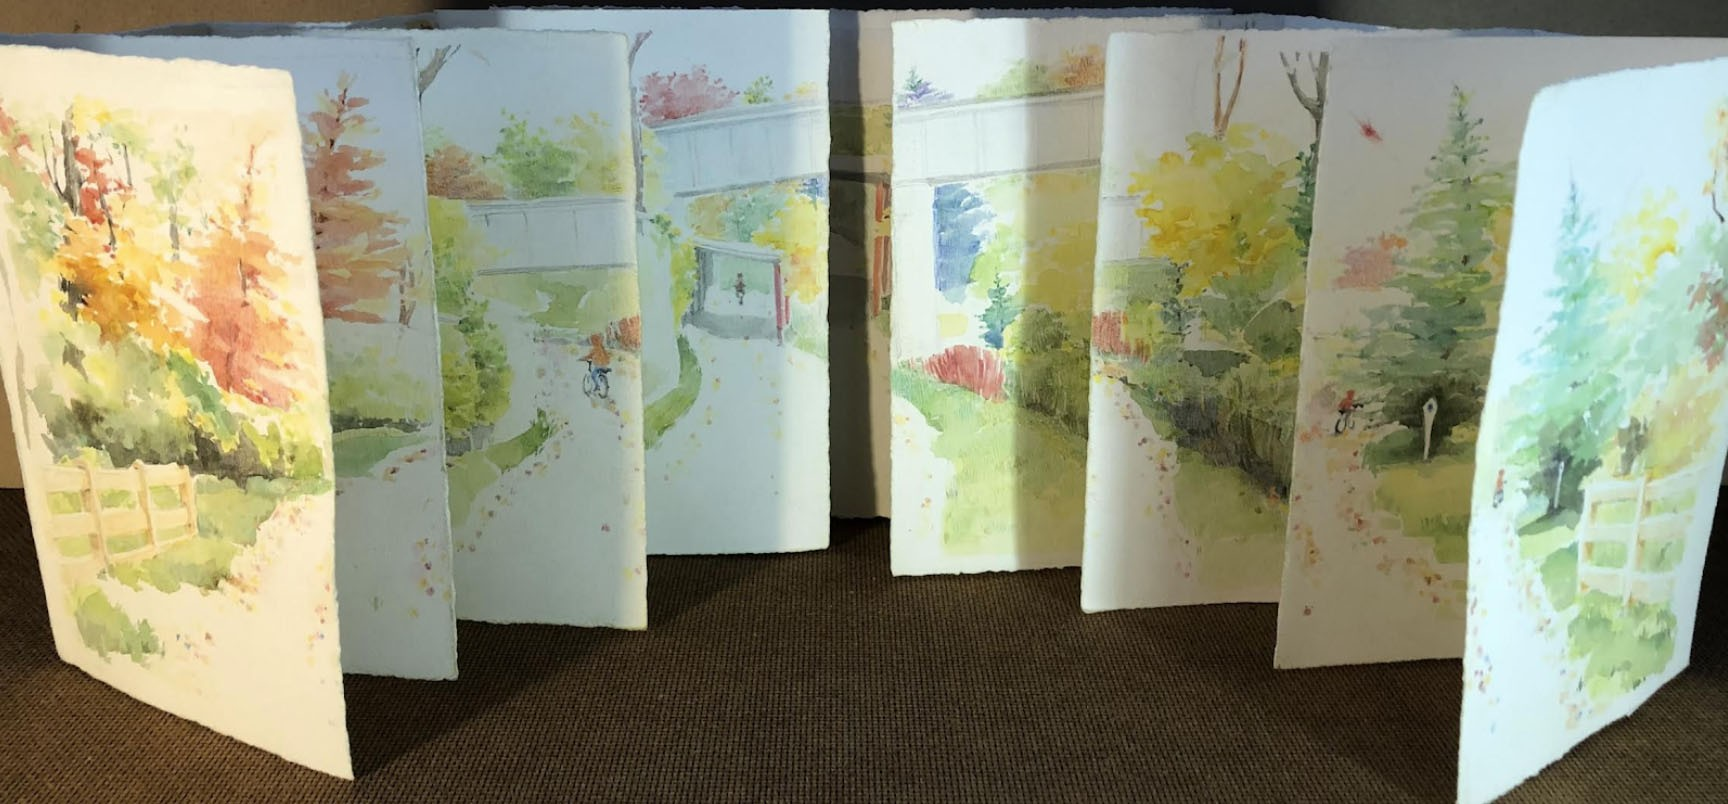 This is a book arts project that depicts a a bike trail in the fall. Each page portrays a a cyclist going further and further along the trails.